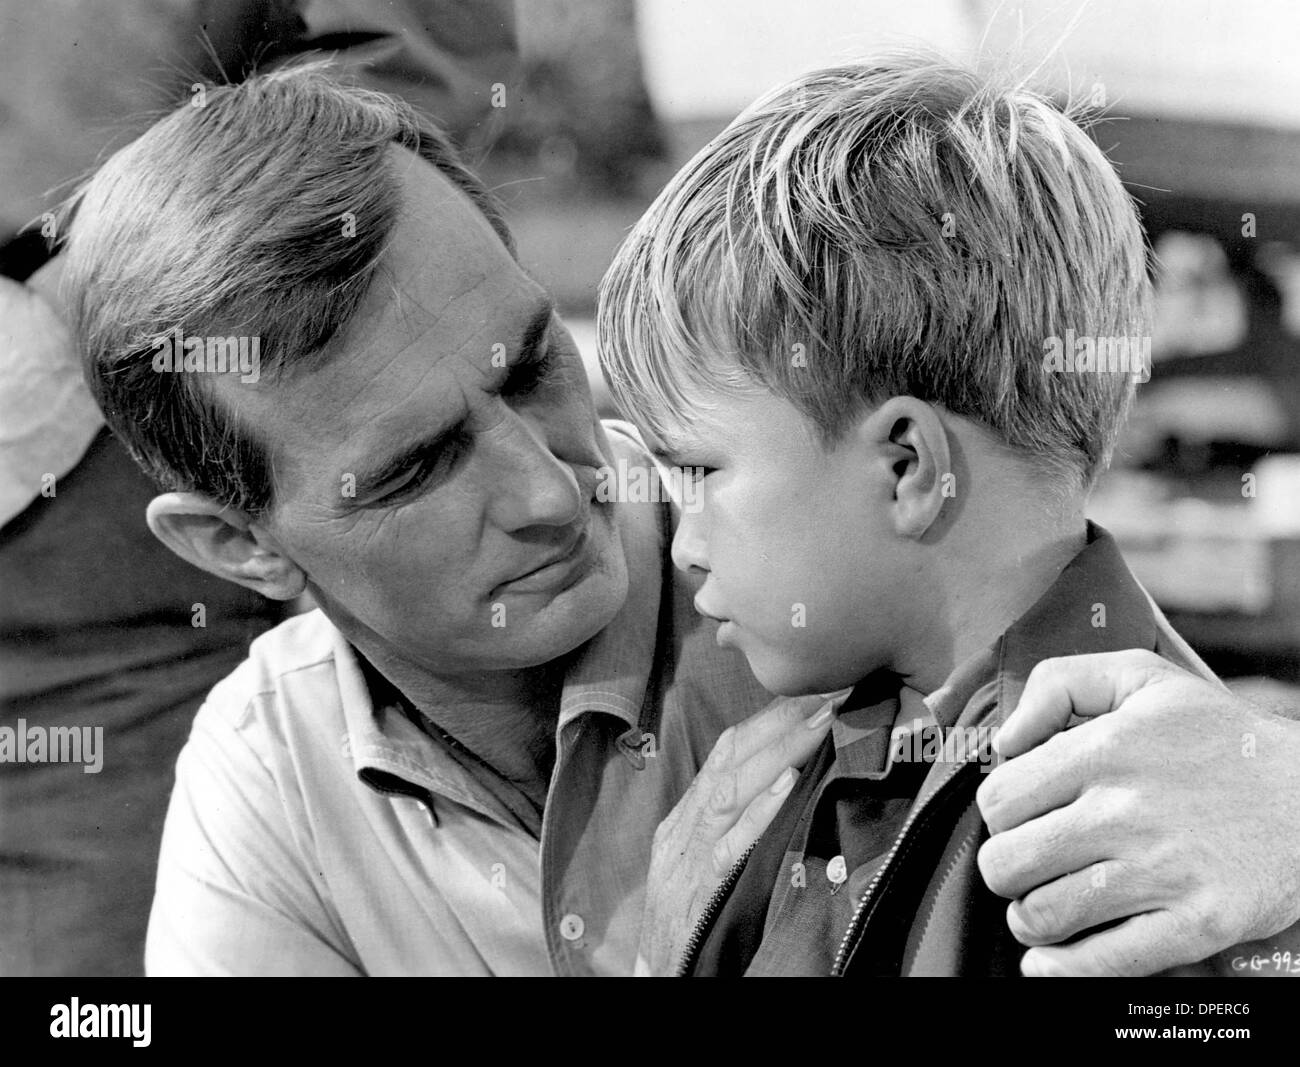 Feb. 27, 2006 - ''GENTLE BEN''.DENNIS WEAVER WITH CLINT HOWARD.SUPPLIED BY   PHOTOS, INC..TV-FILM STILL (Credit Image: © Globe Photos/ZUMApress.com) - Stock Image